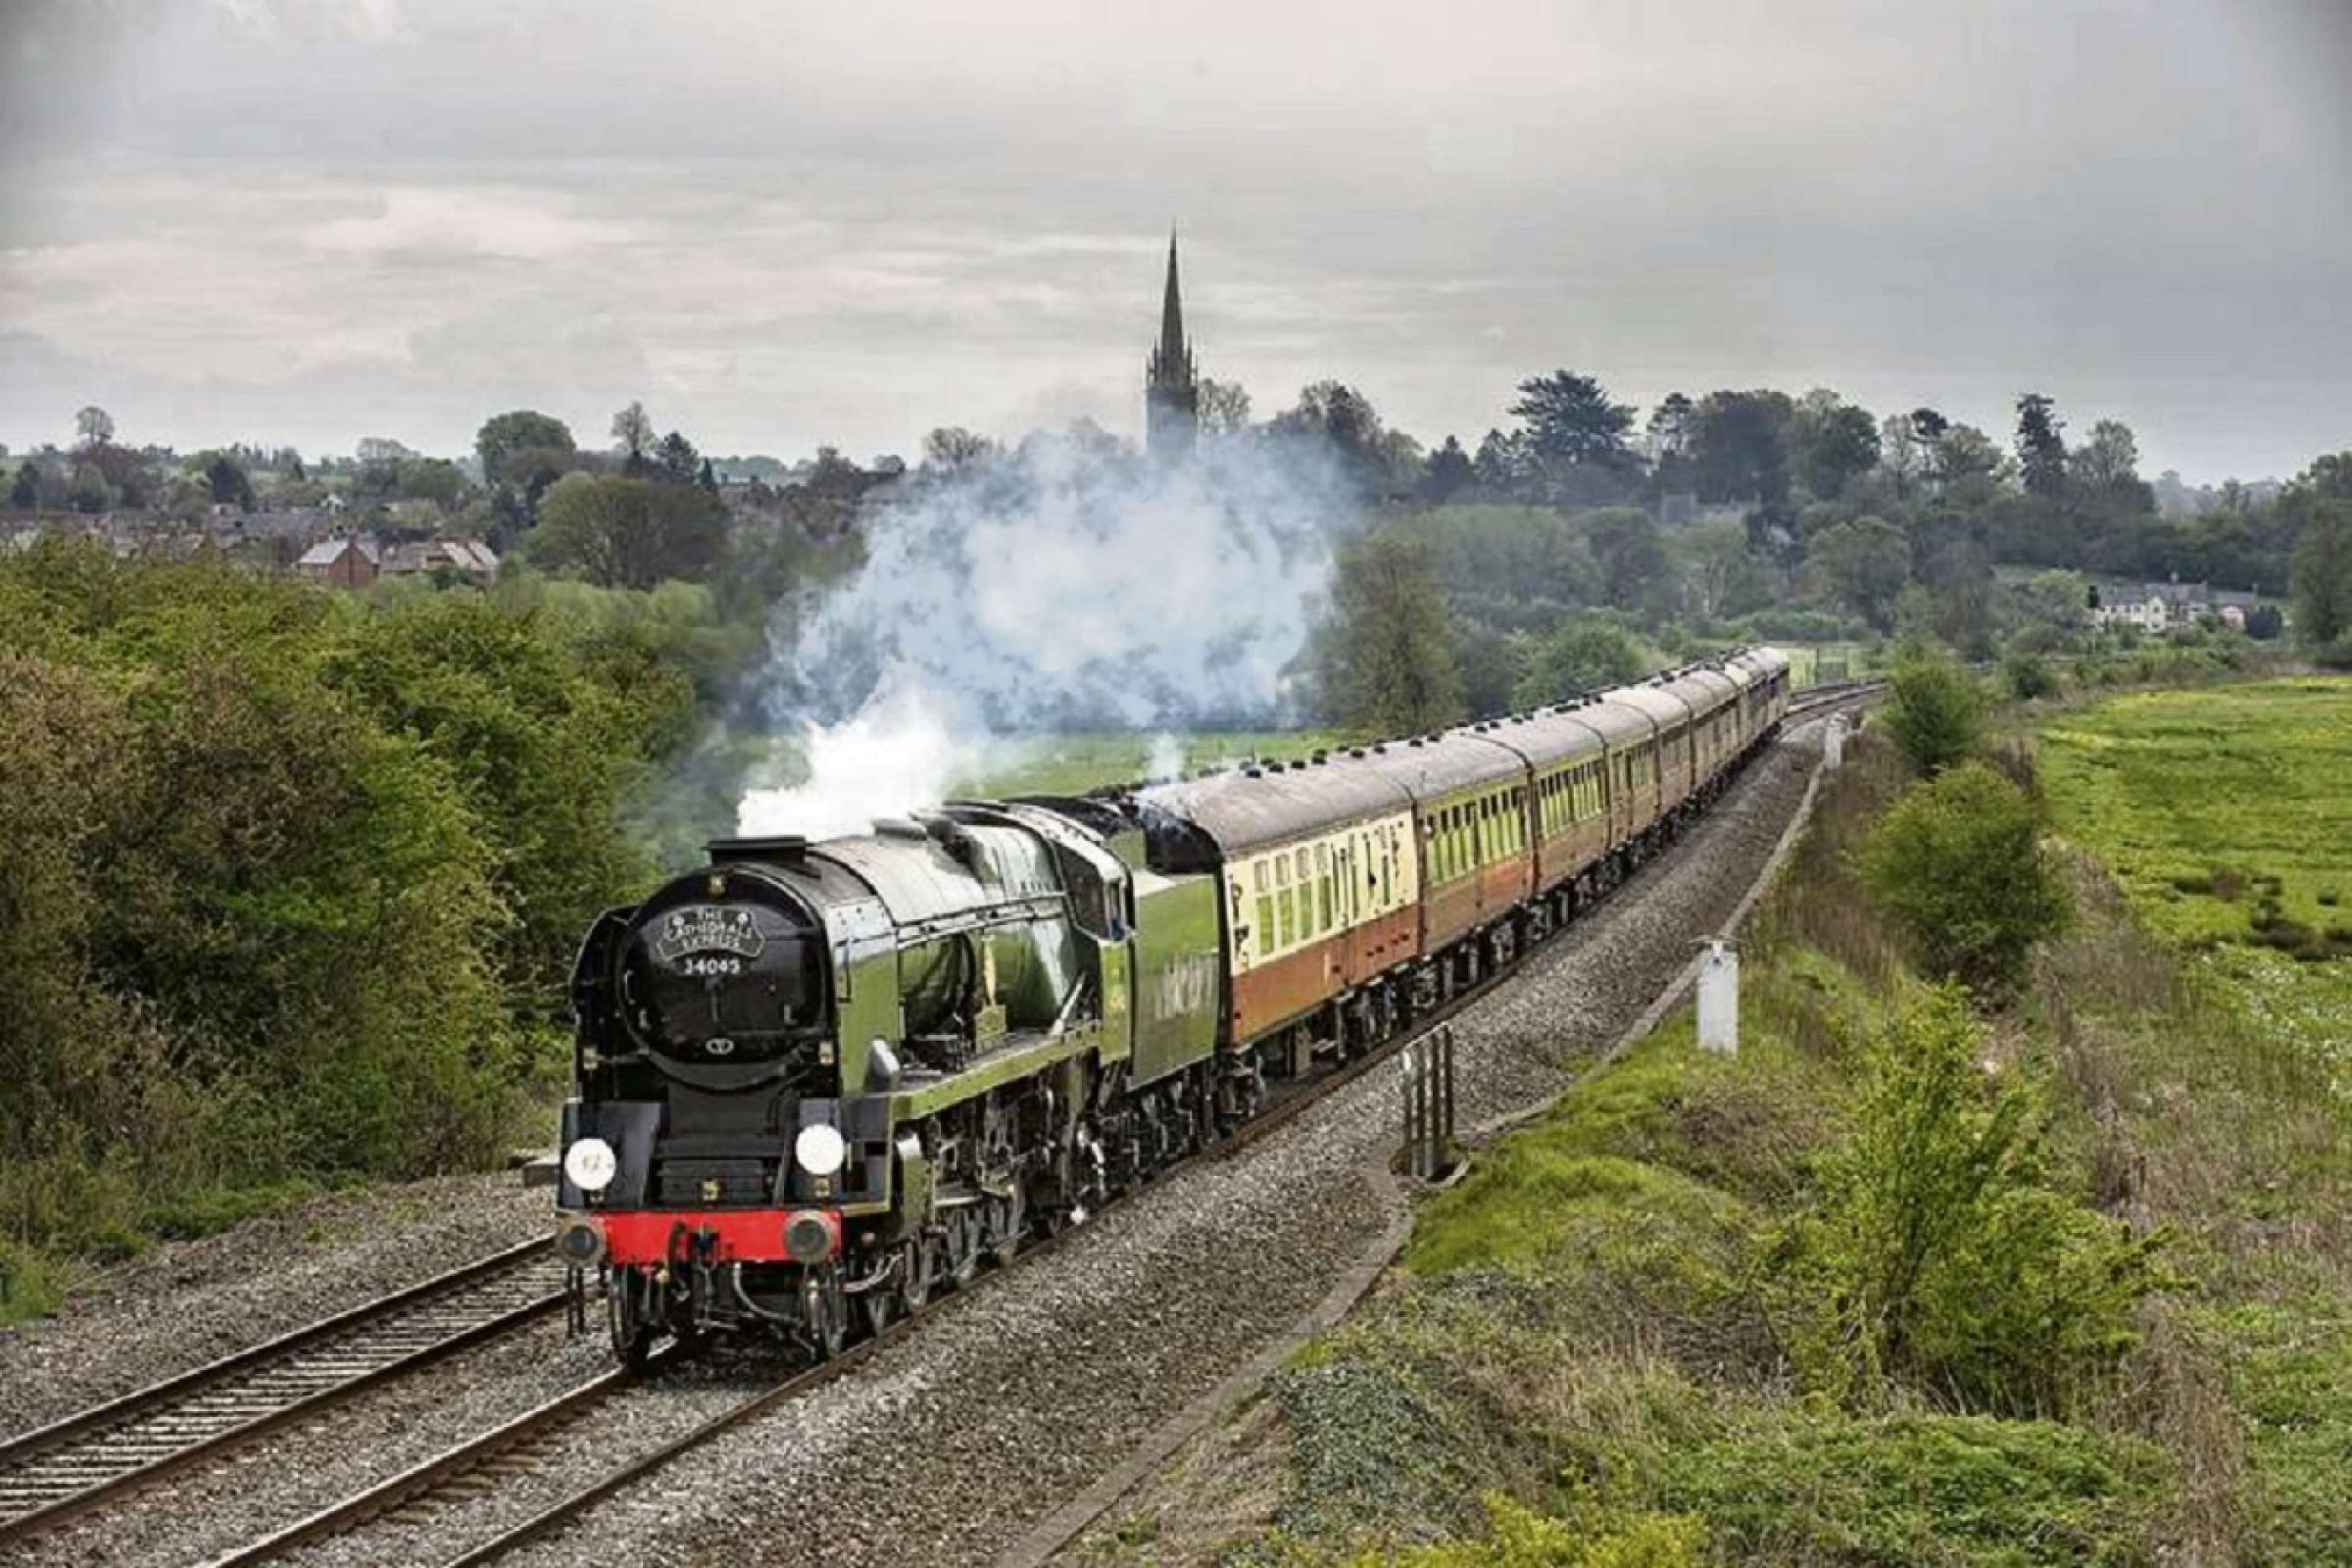 68-year-old steam engine to pass thorough Worcestershire on Saturday